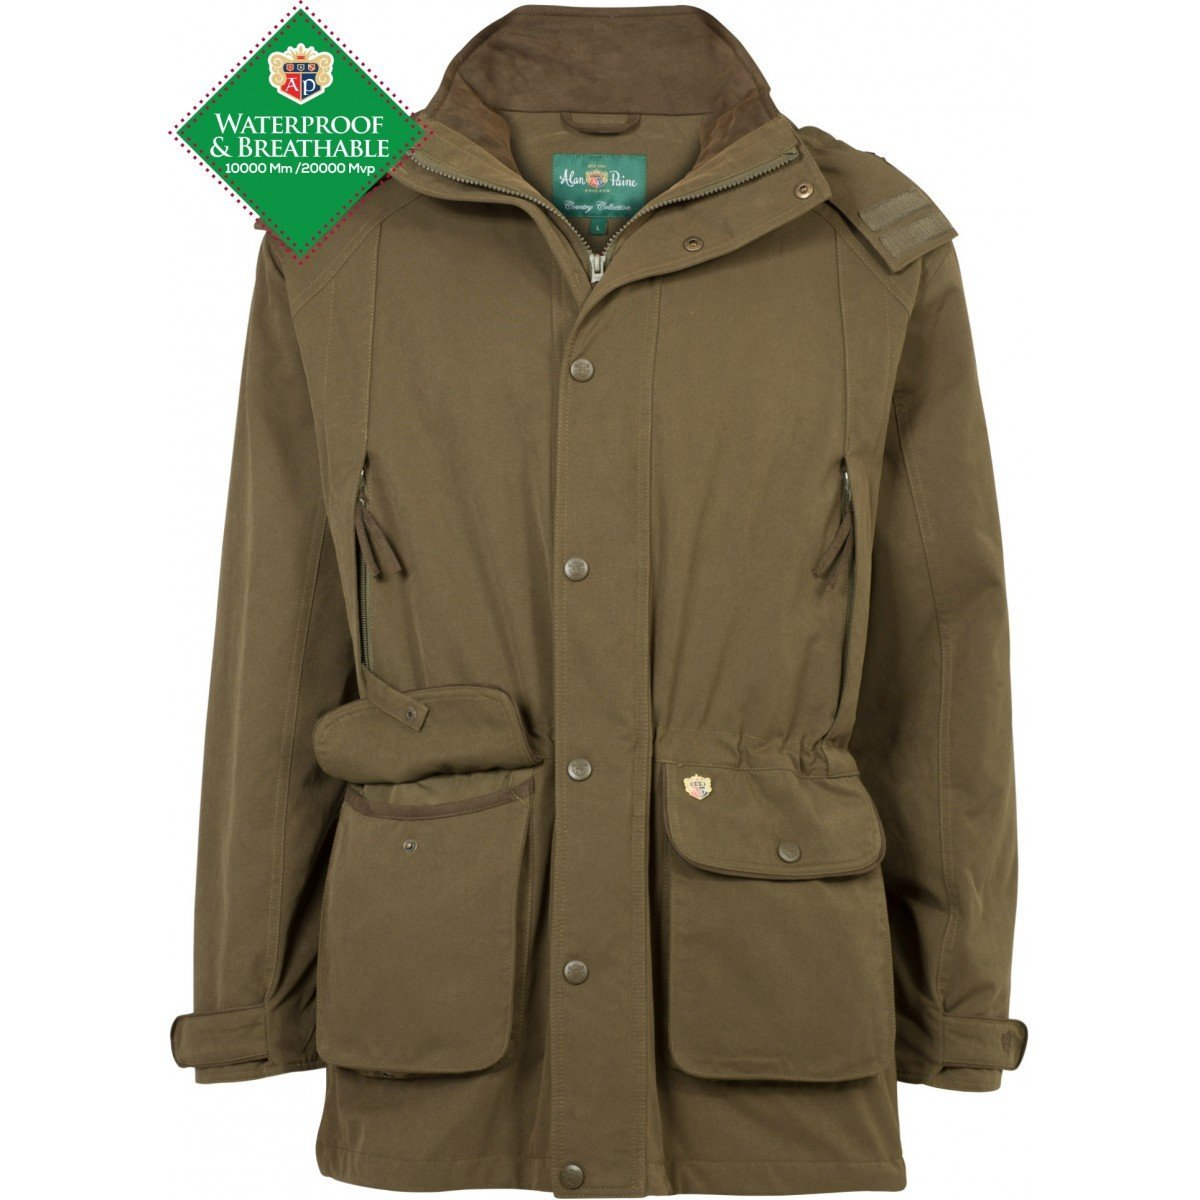 Dunswell Mens Waterproof Jacket - Shooting Fit - Olive - reid outdoors